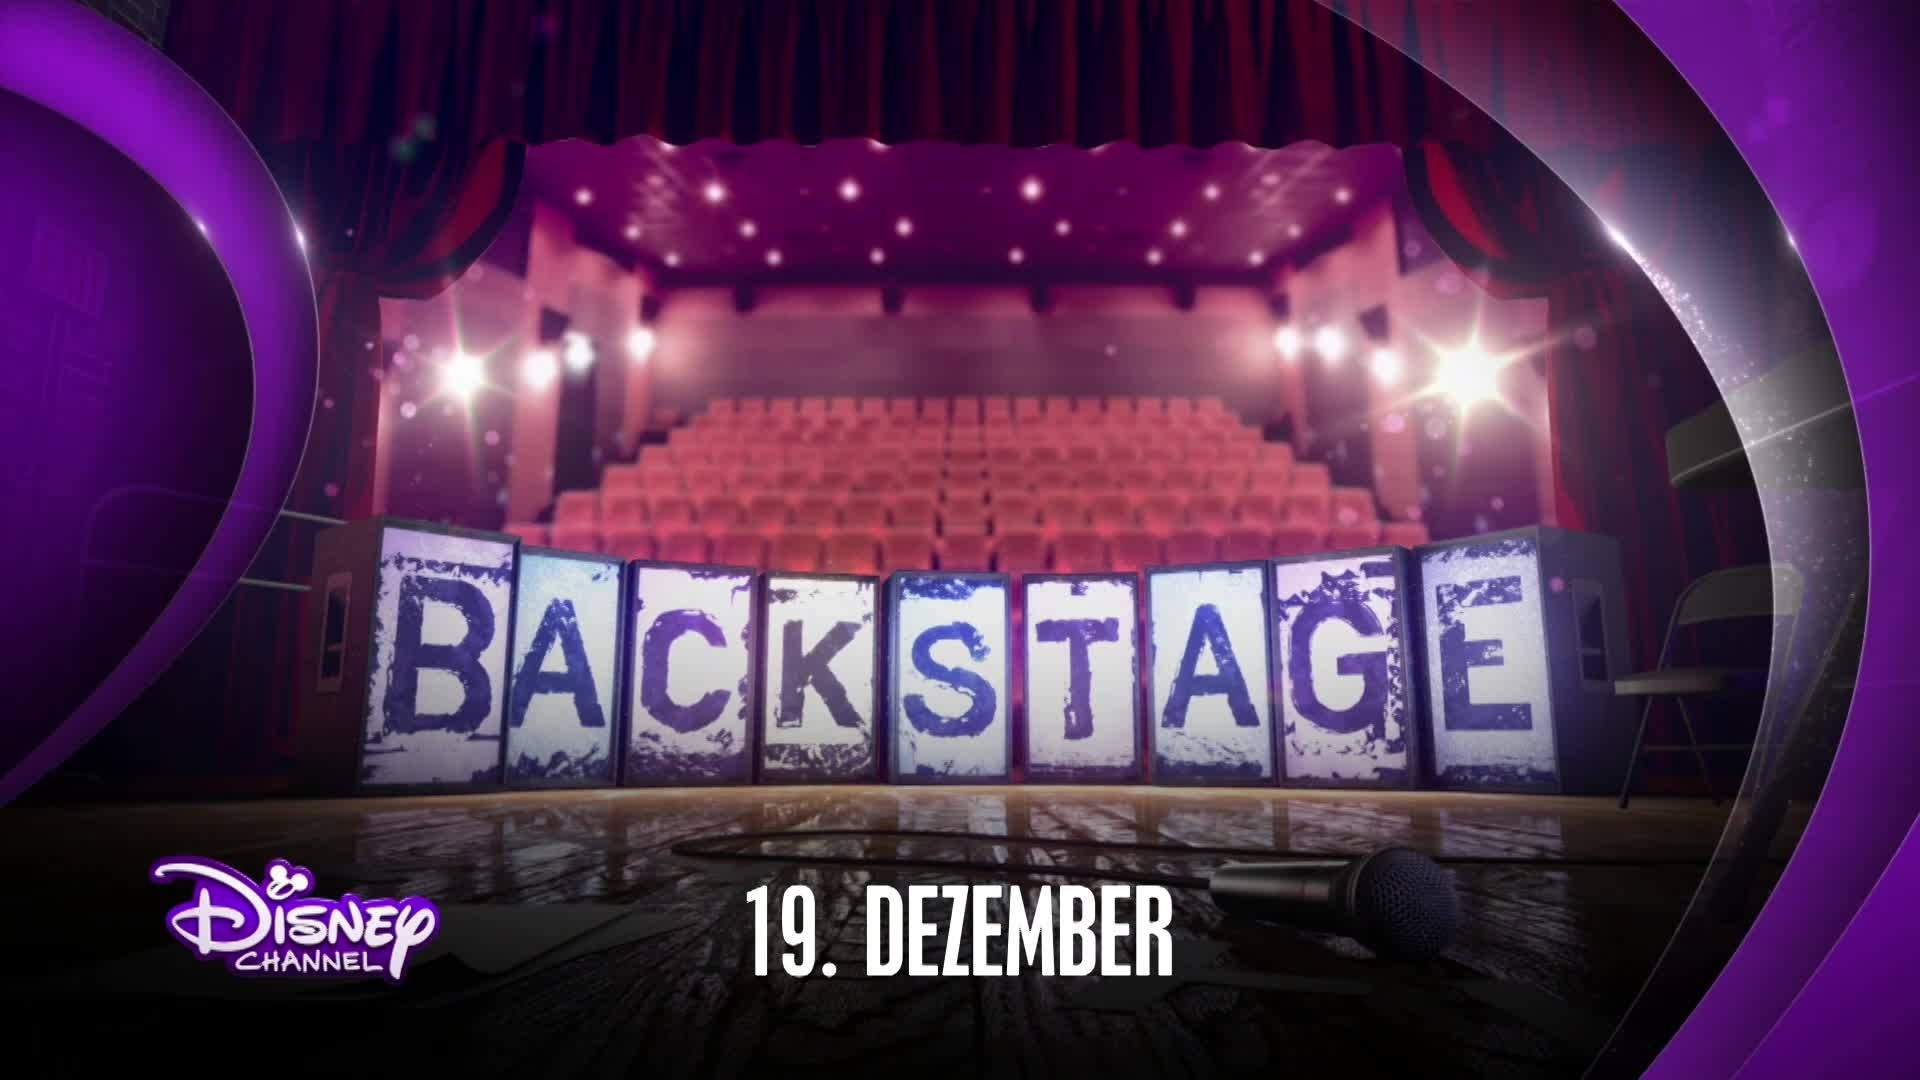 Backstage - Trailer